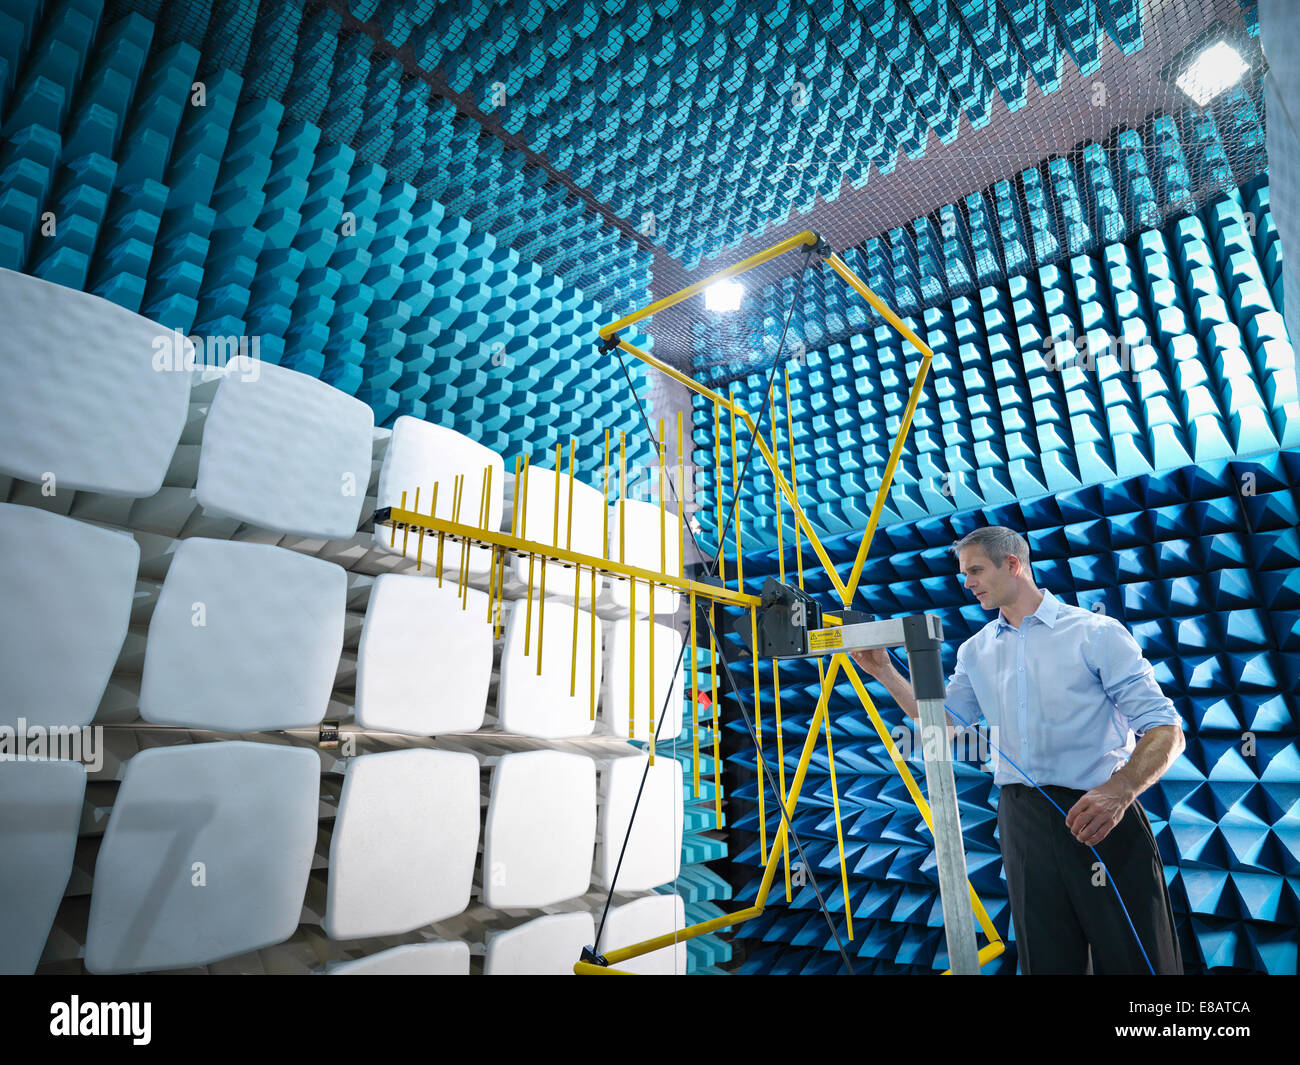 Scientist preparing to measure electromagnetic waves in anechoic chamber - Stock Image